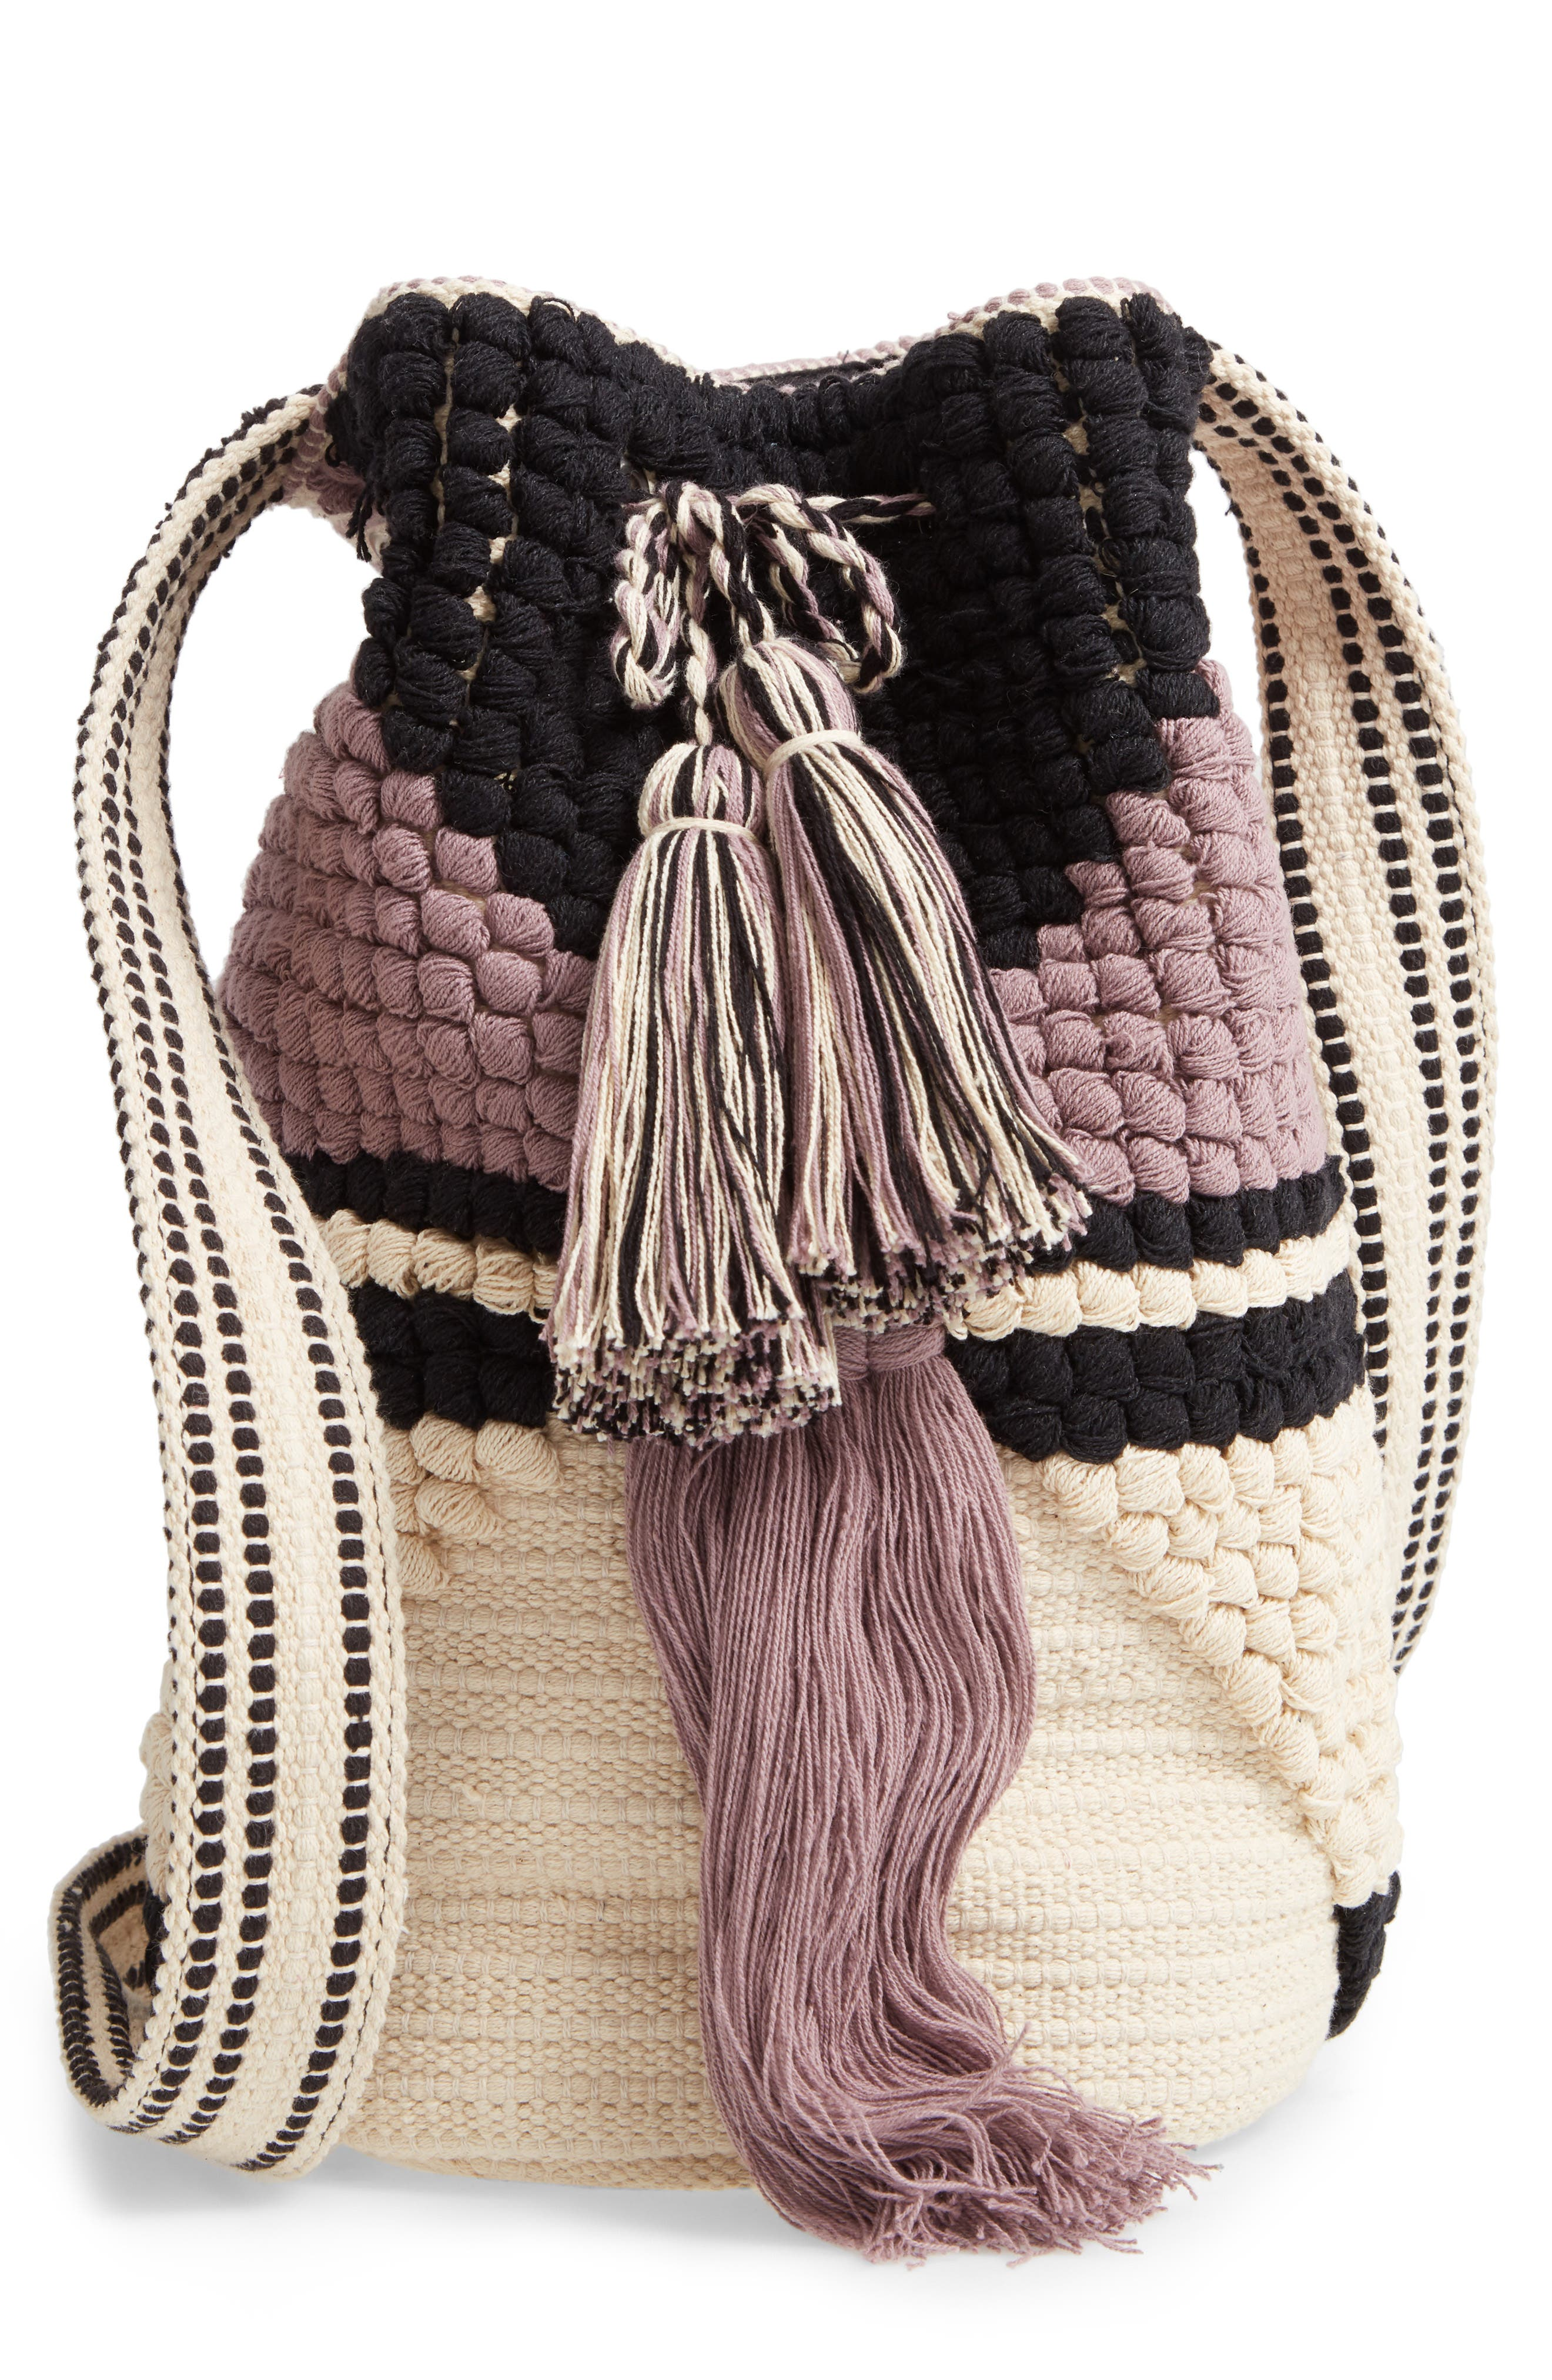 Halay Woven Bucket Bag,                             Main thumbnail 1, color,                             BLACK/ CREAM